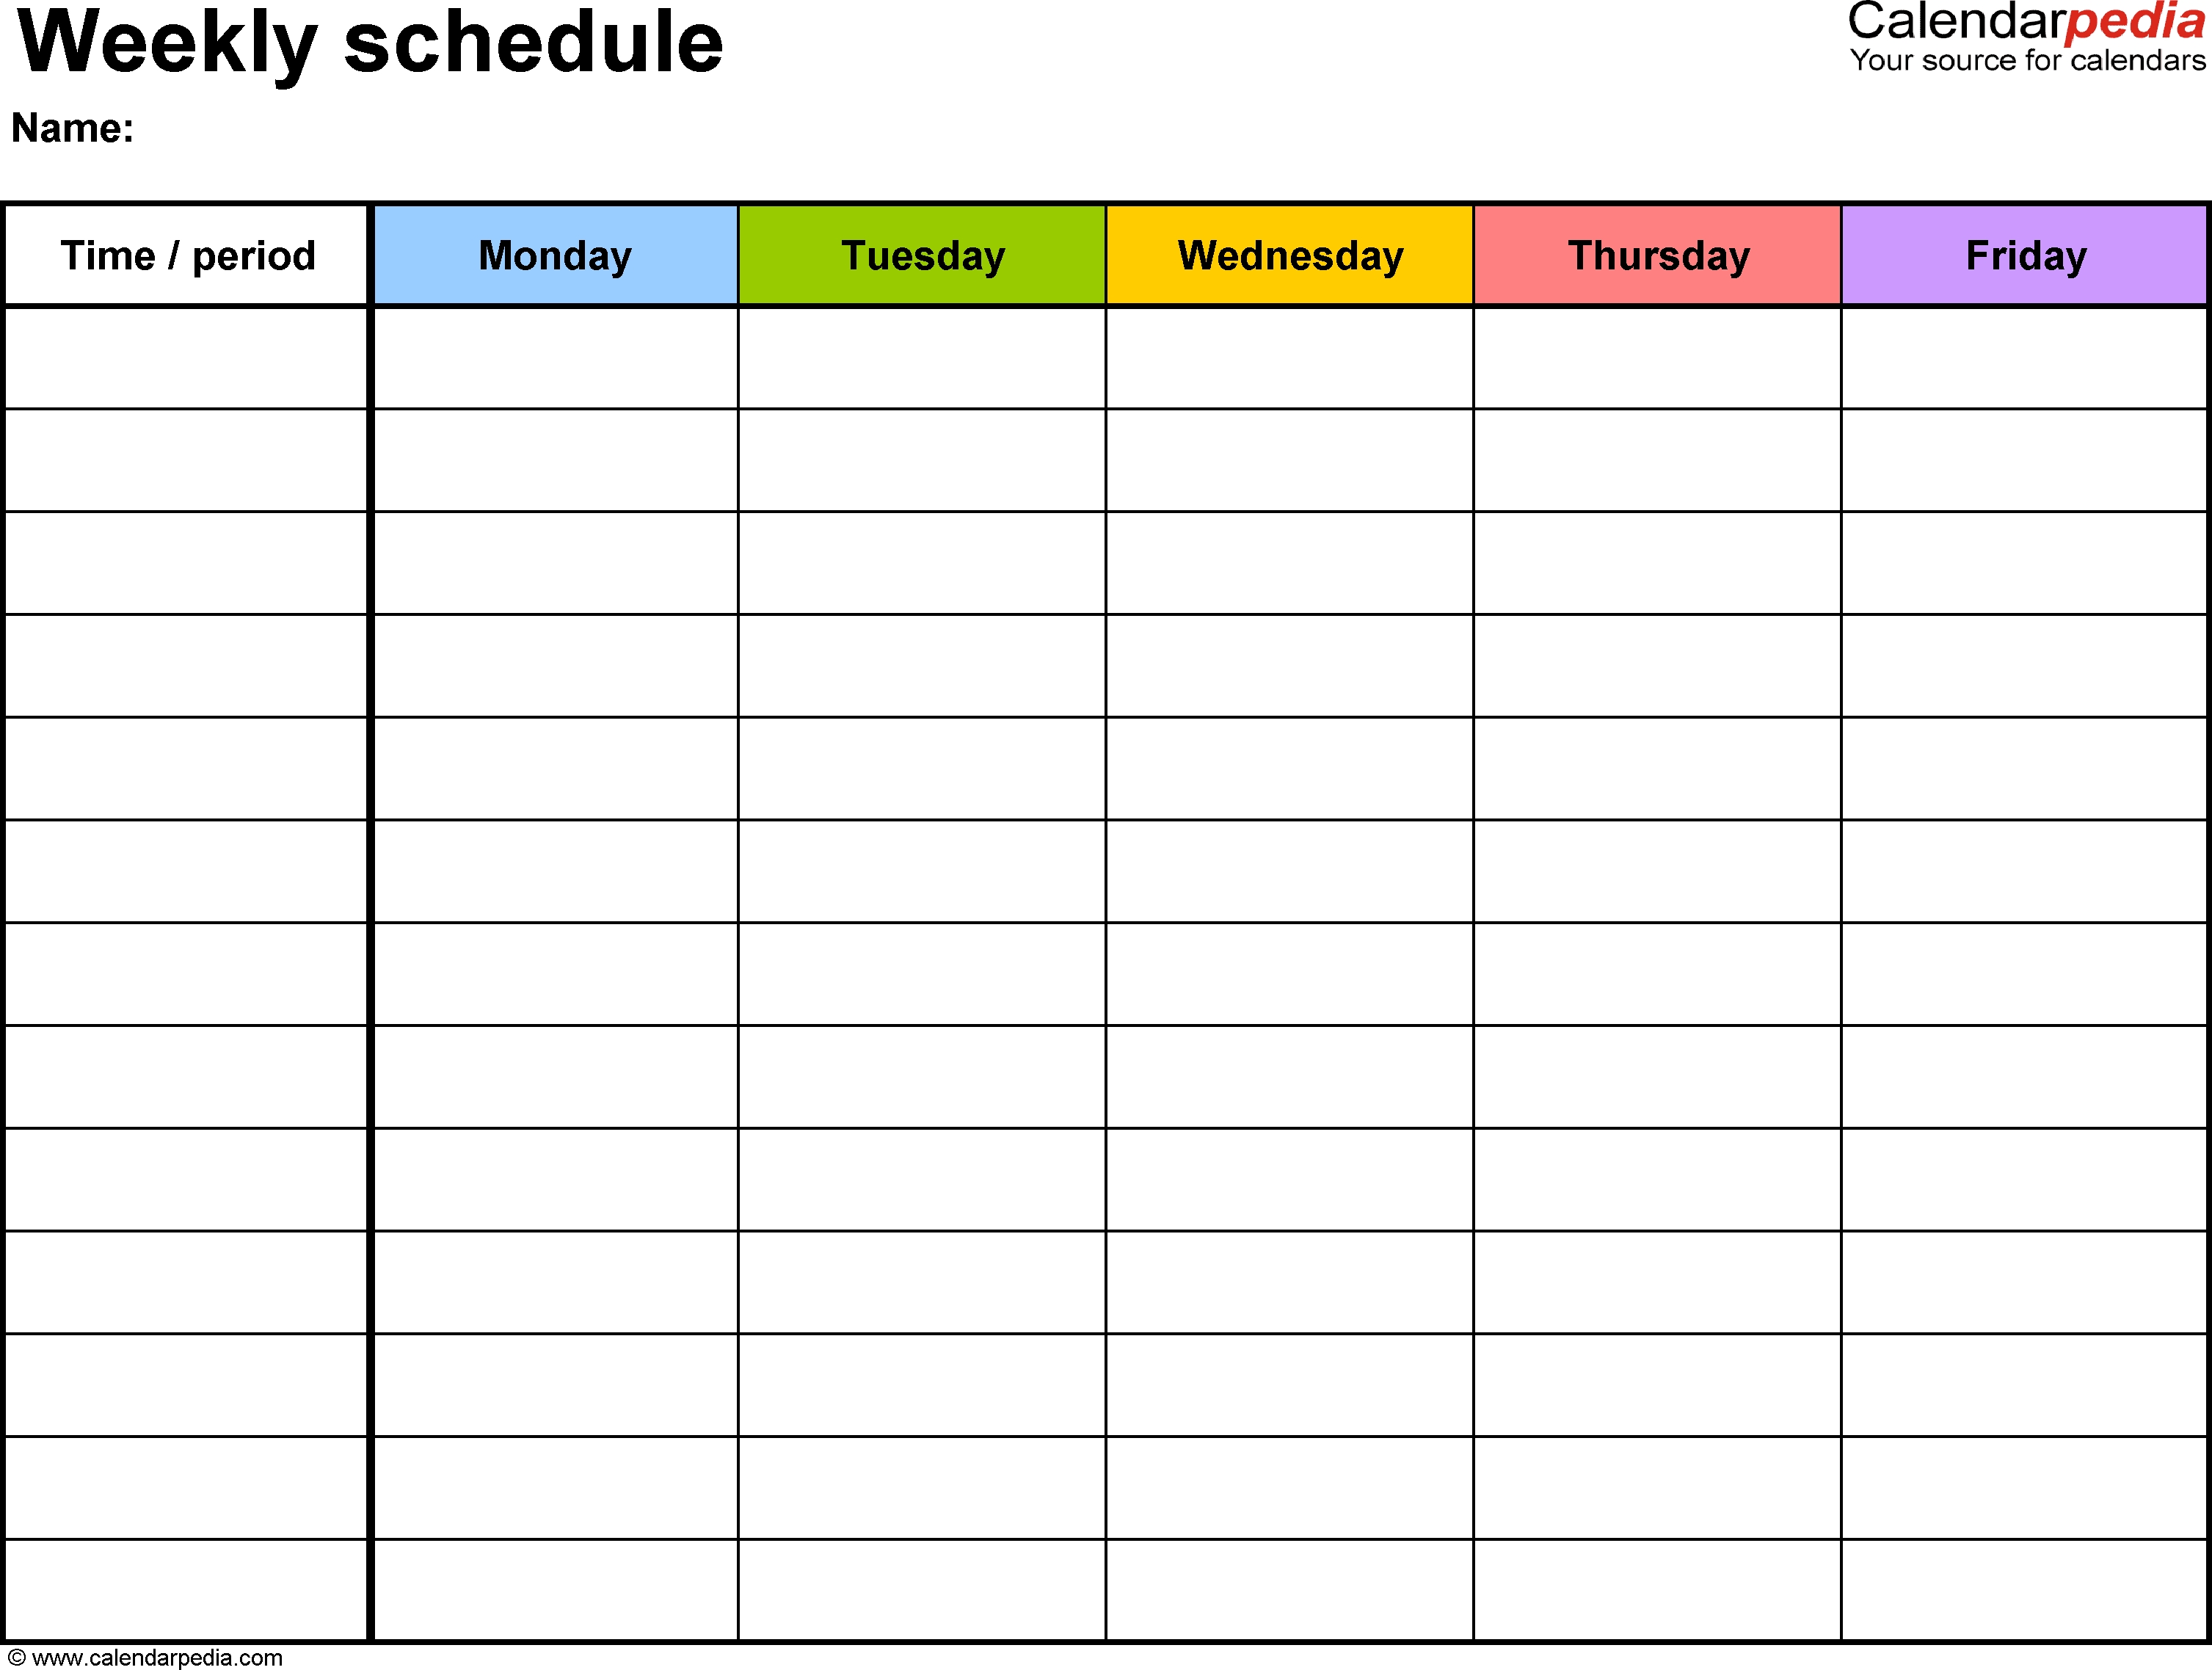 Free Weekly Schedule Templates For Excel - 18 Templates intended for Printable Weekly Schedule Flow Chart